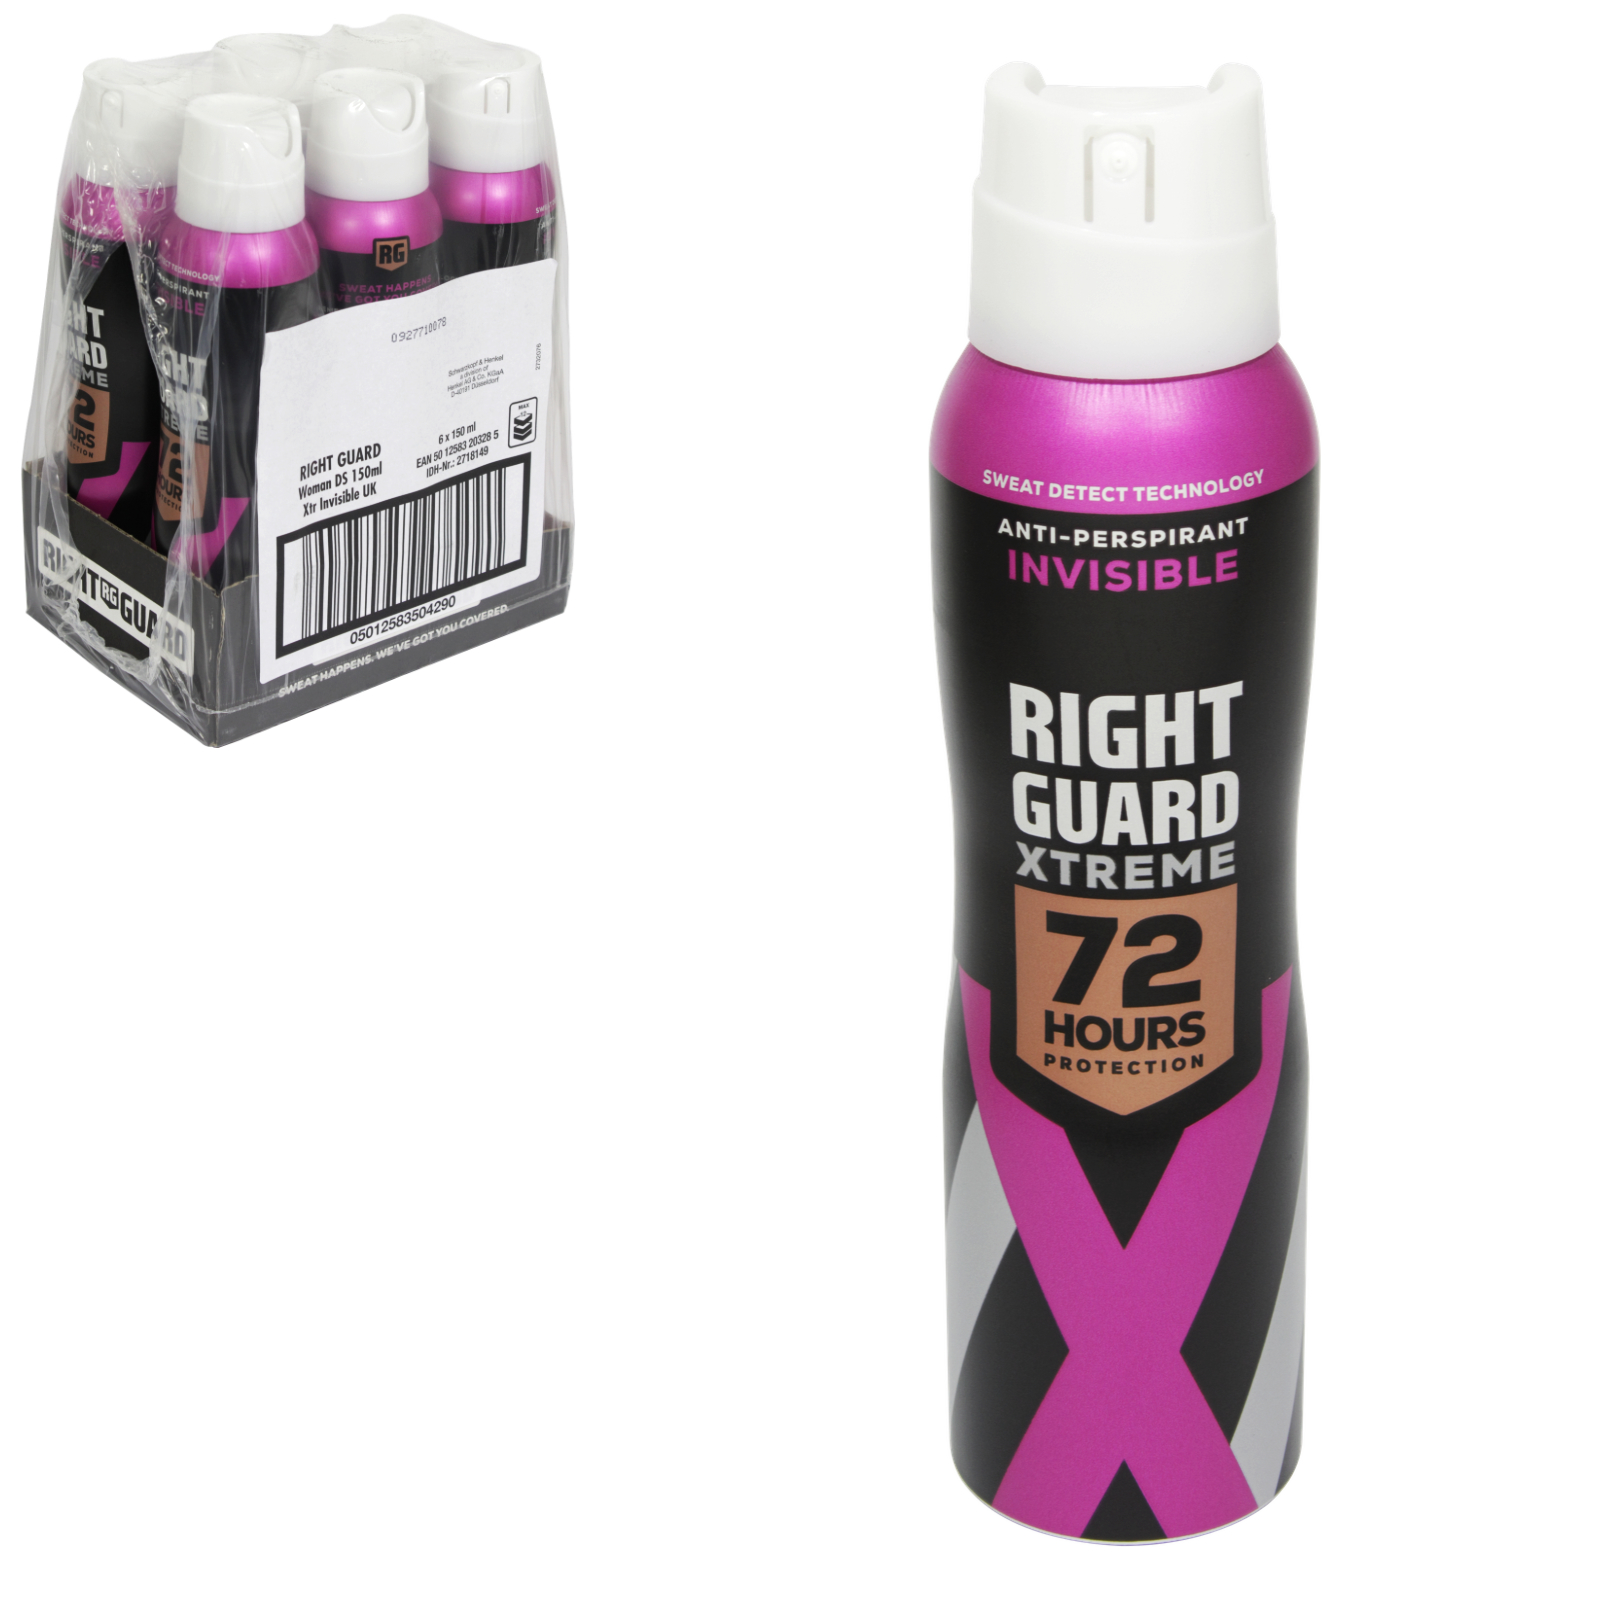 RIGHT GUARD XTREME APA FOR WOMEN 150ML INVISIBLE X6